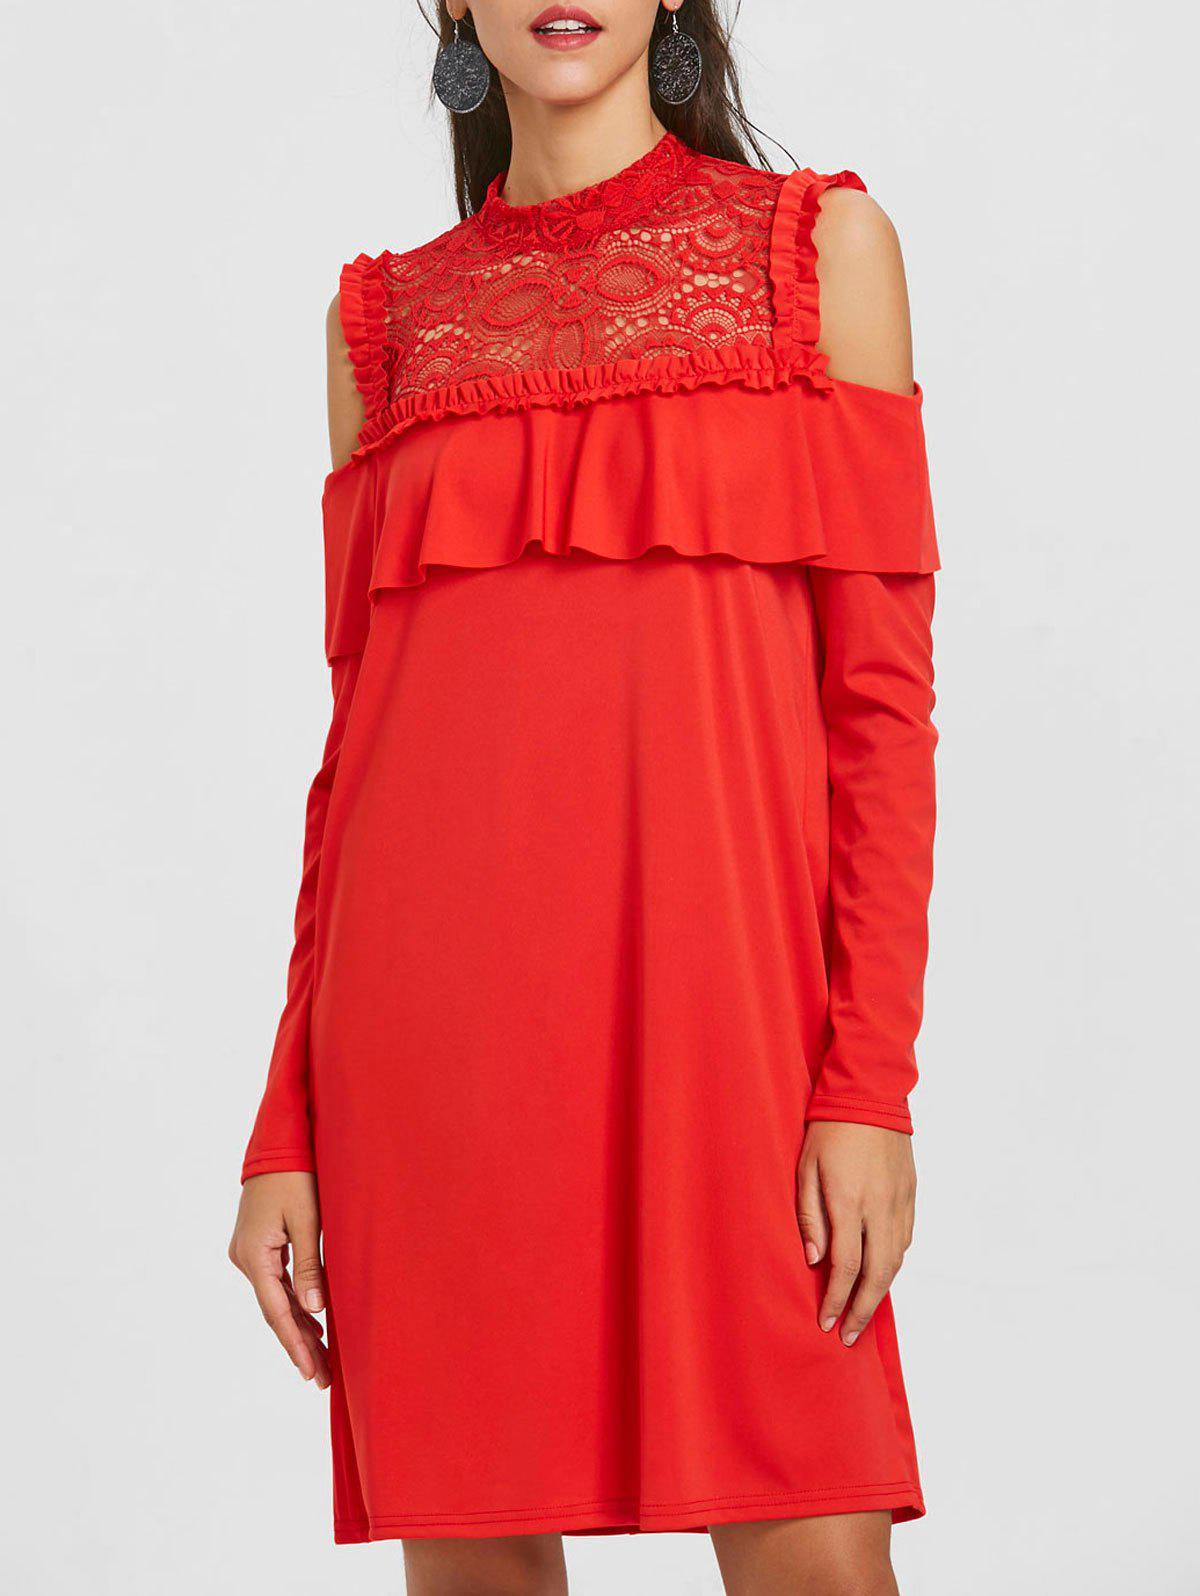 Lace Trim Open Shoulder Ruffle Dress - RED M